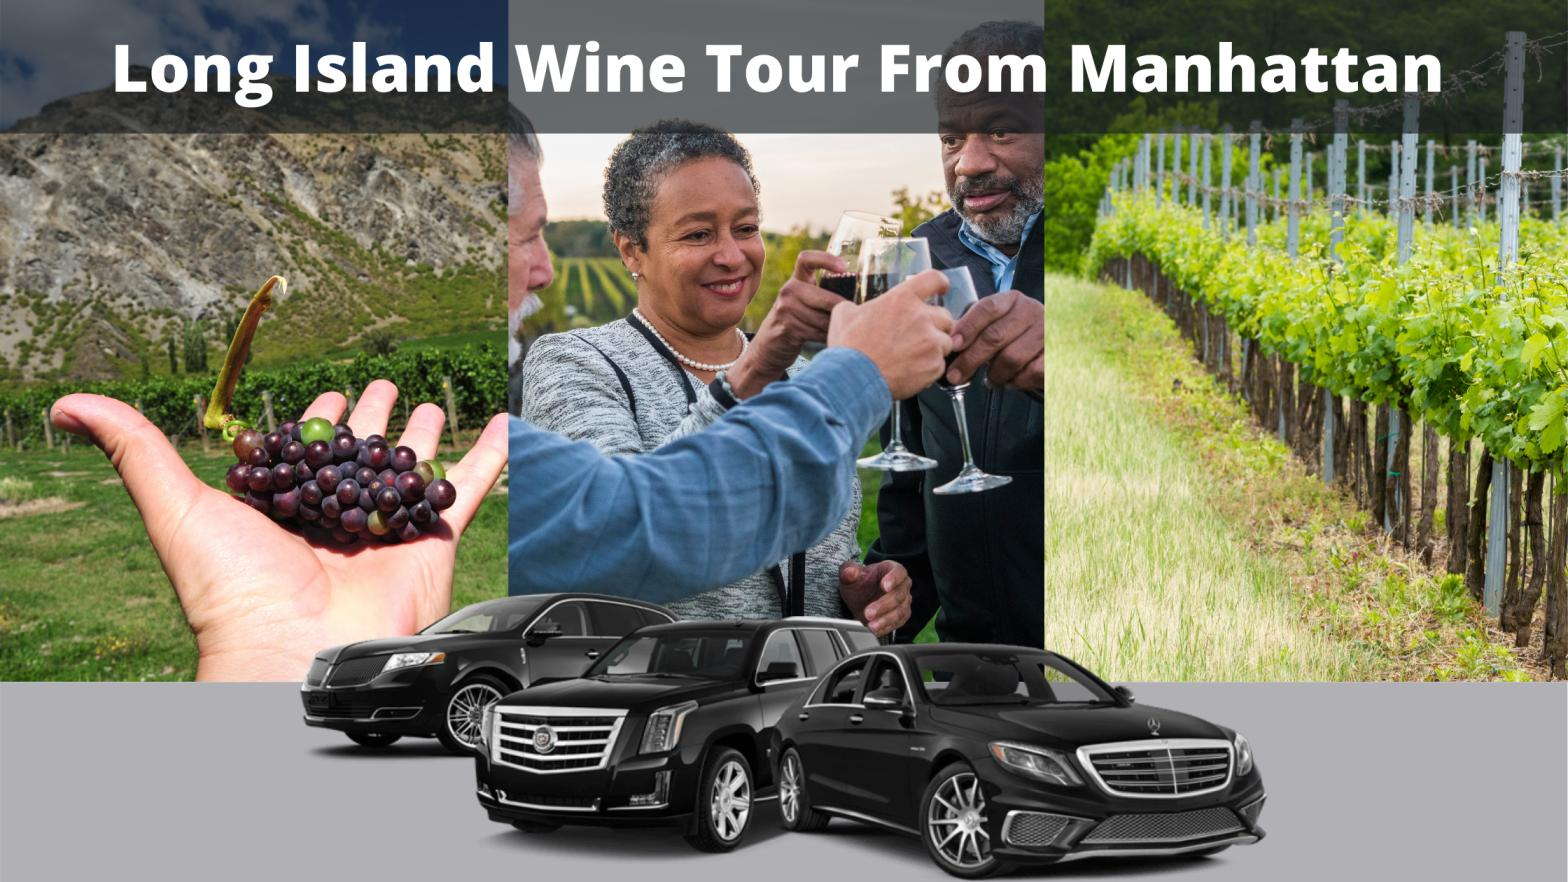 How do you get to Long Island wineries from Manhattan?